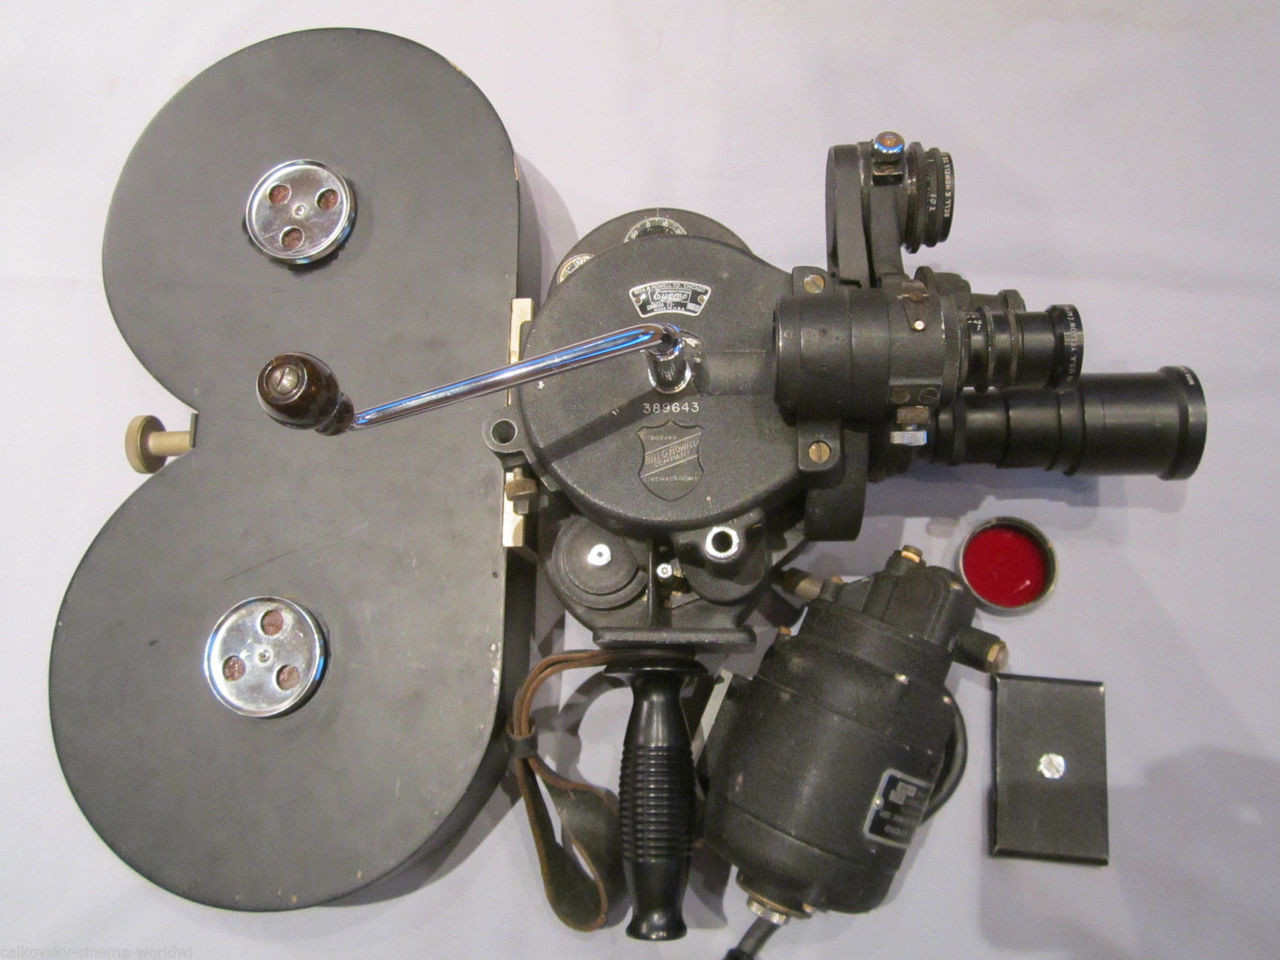 HAND CRANK Bell & Howell Military Eyemo 35mm Movie Camera